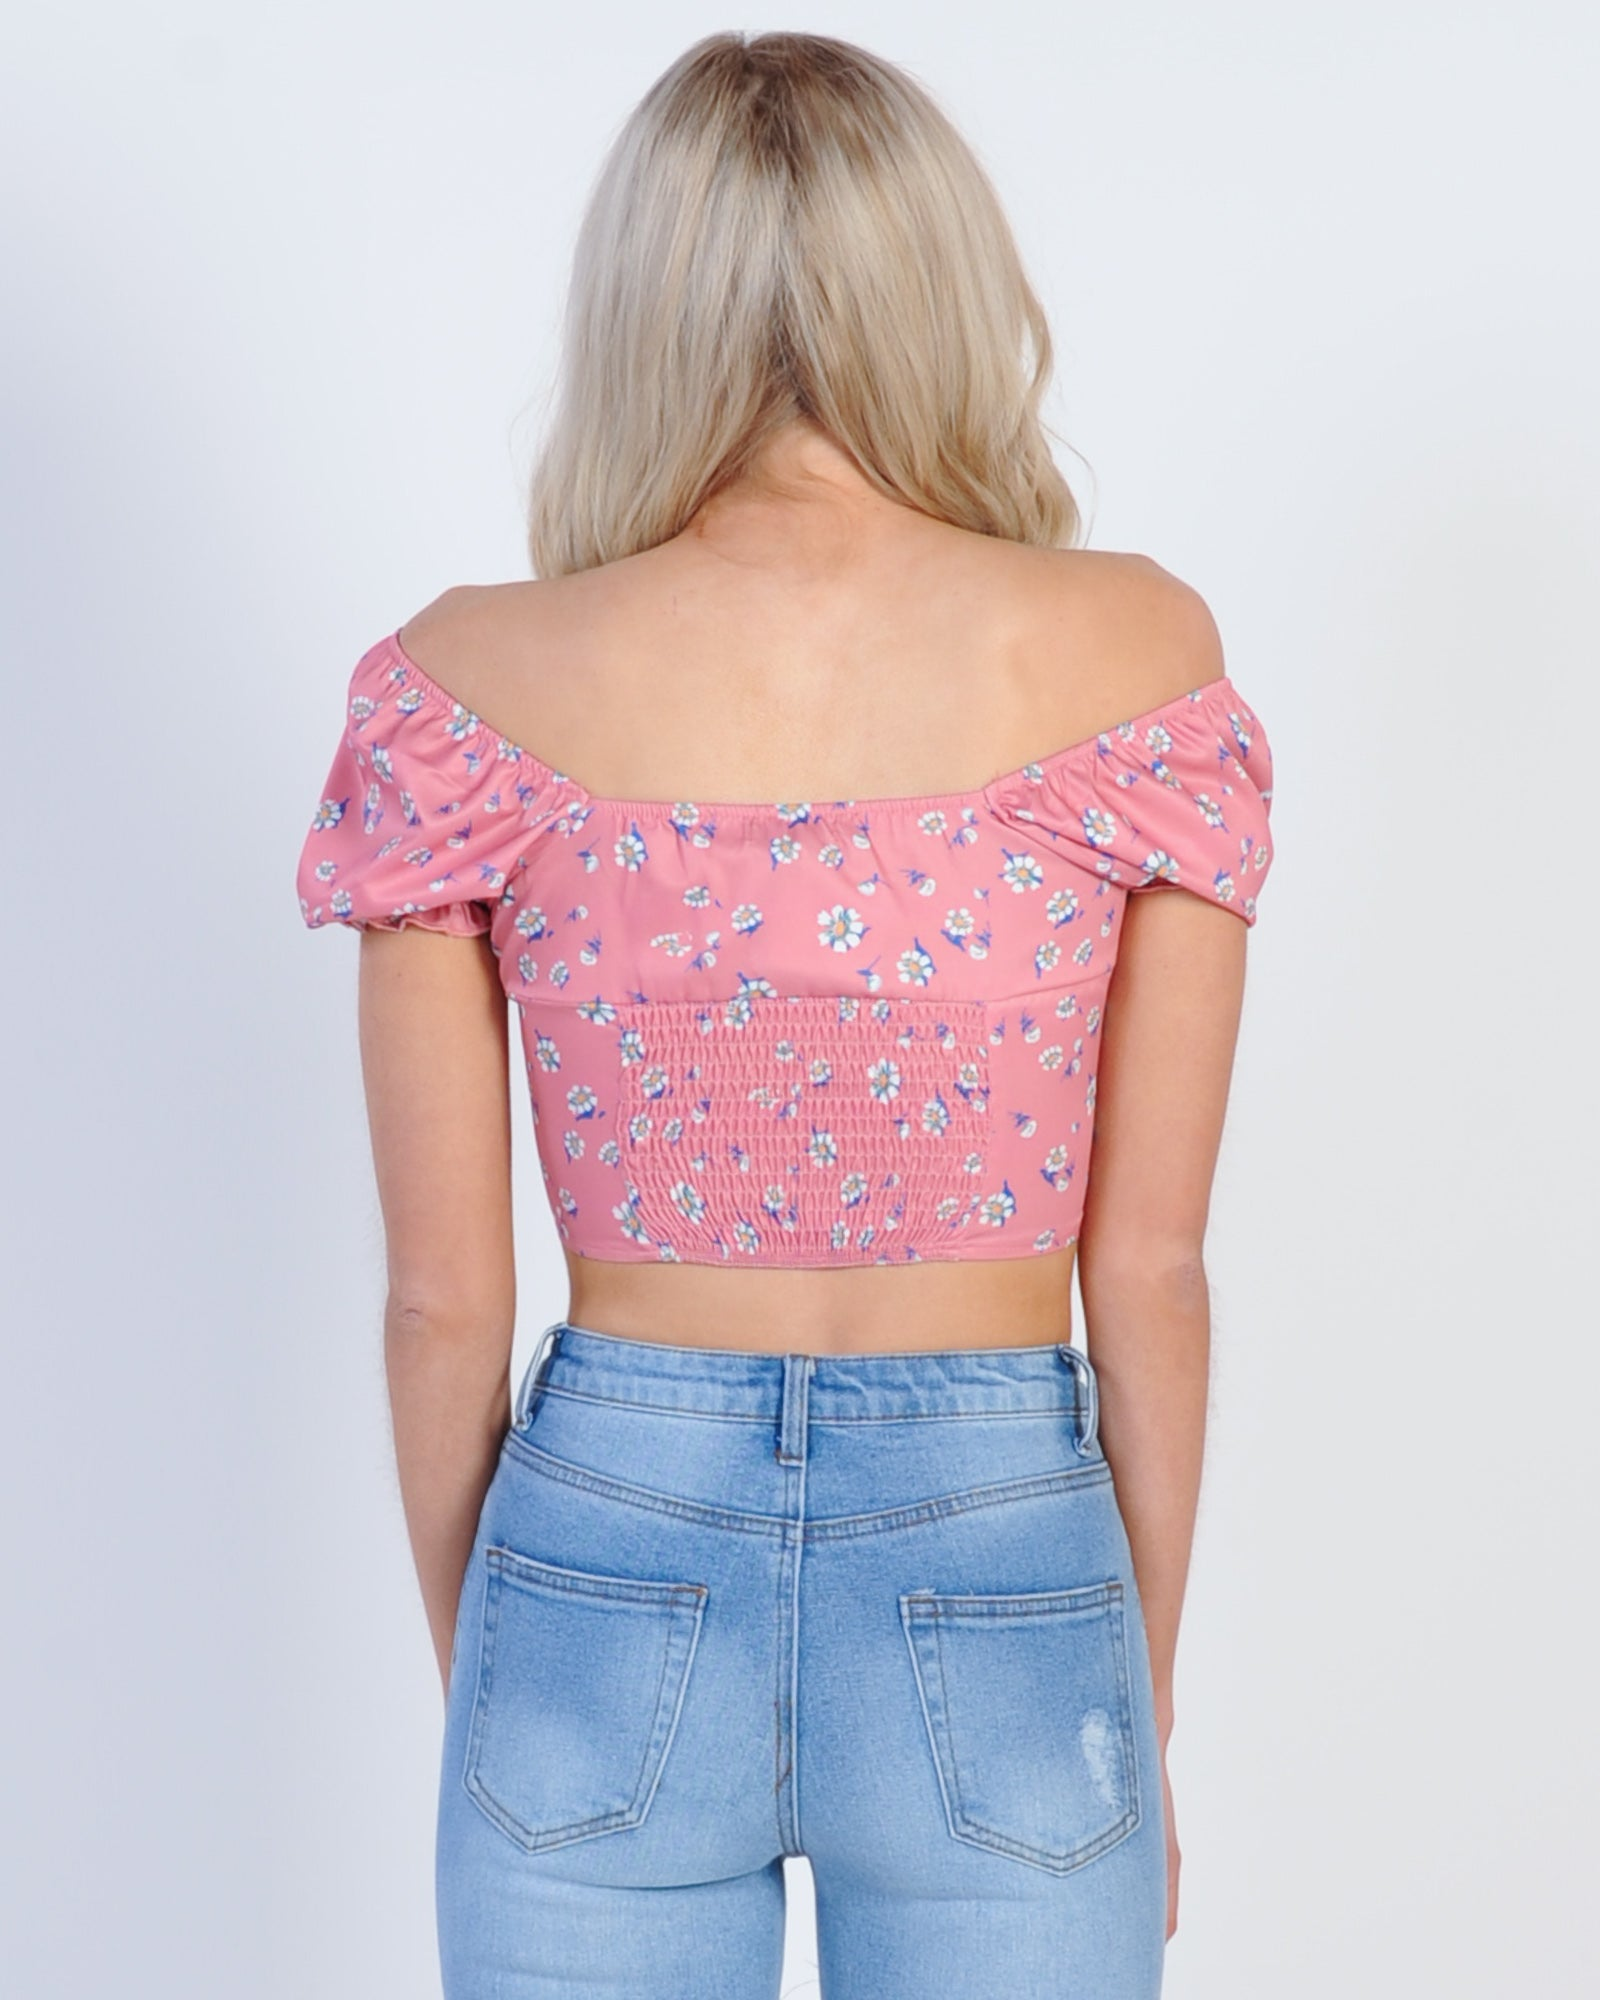 Sweet Eyes Crop Top - Pink